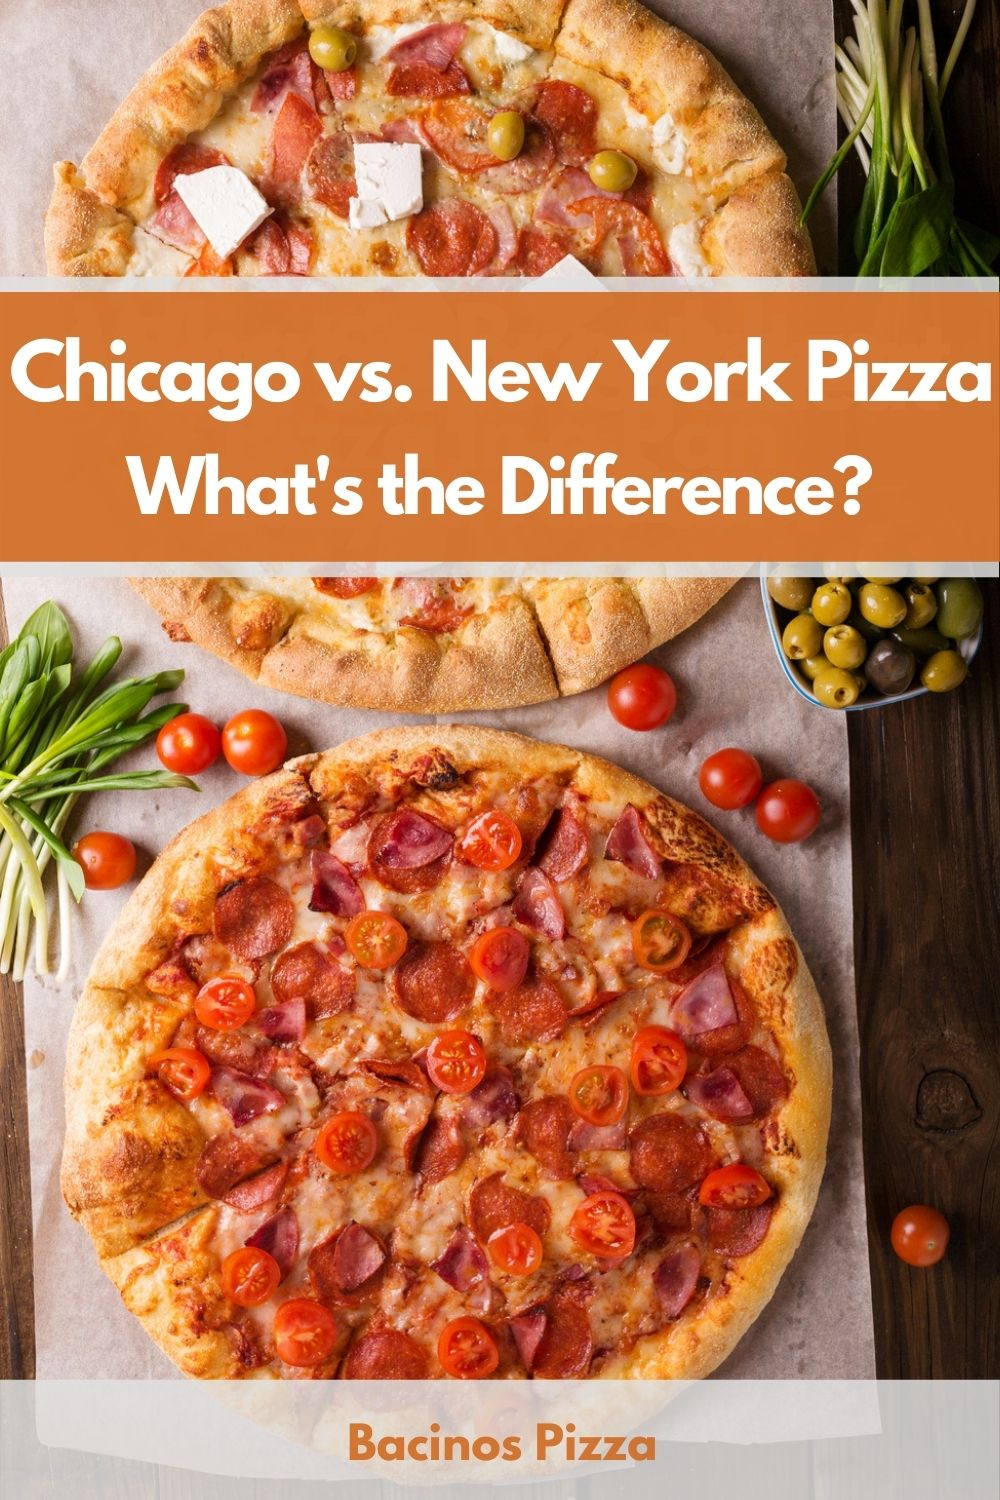 Chicago vs. New York Pizza What's the Difference pin